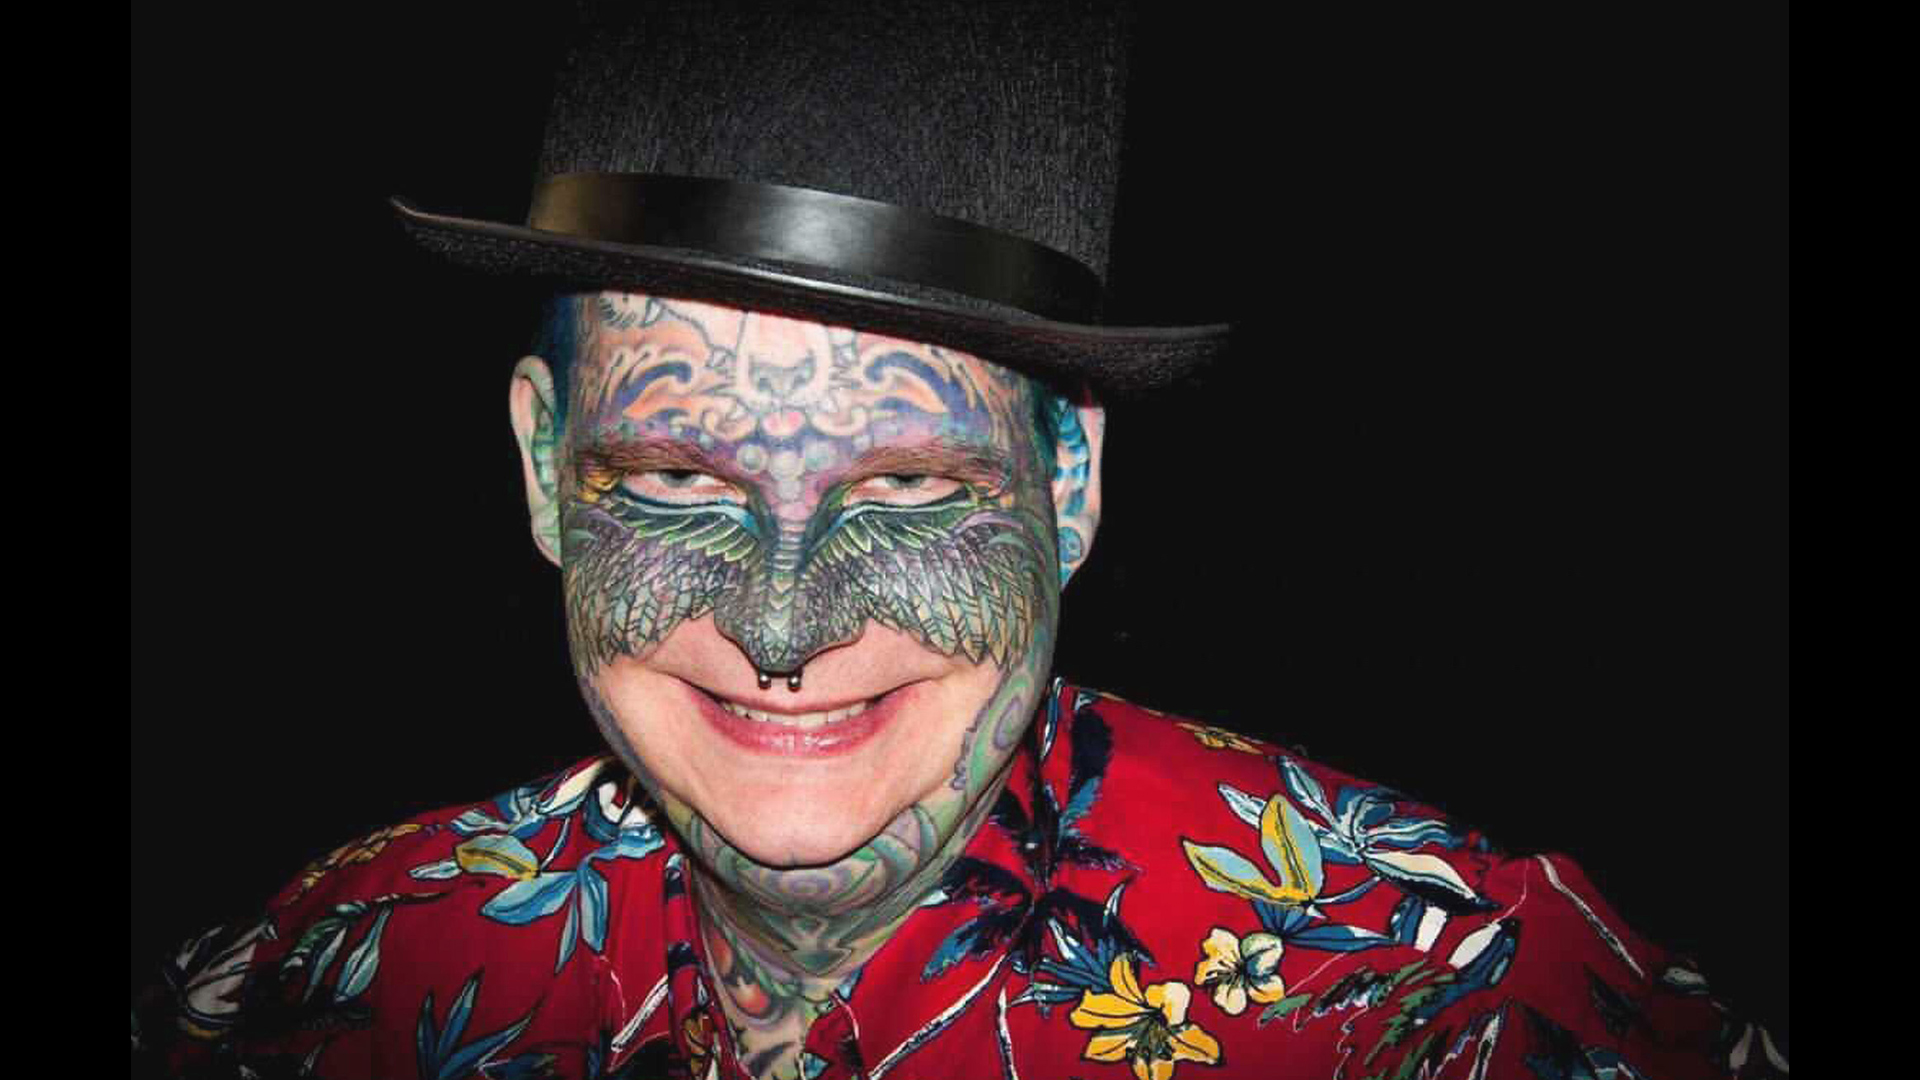 Choux Much? Pastry Chef Blows $31K On Tattoos And Piercings